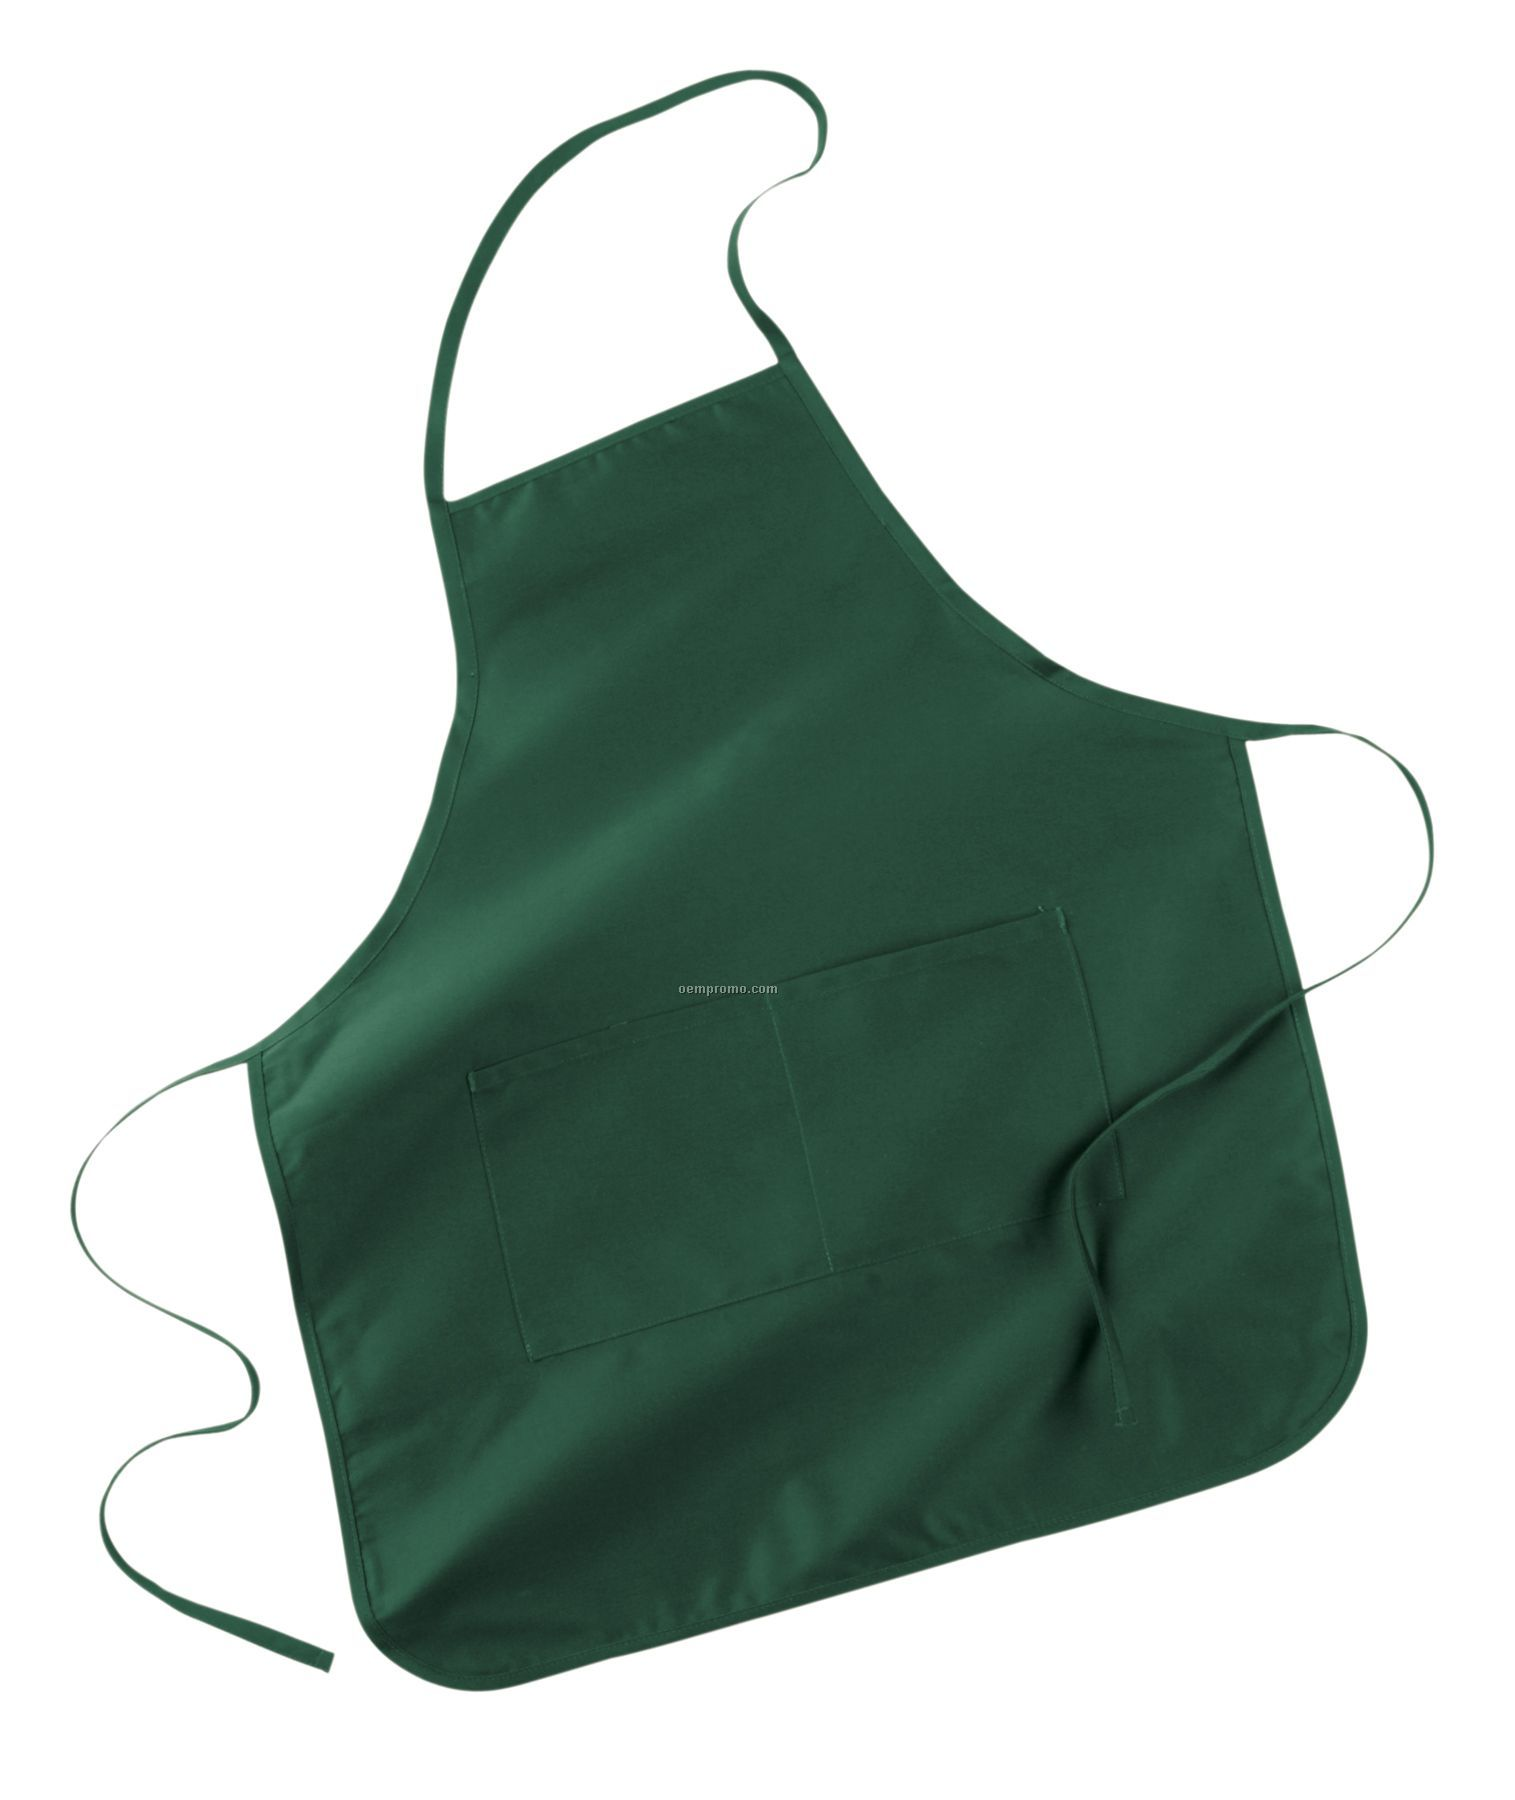 Kc Caps Large Pocketed Apron - Colors